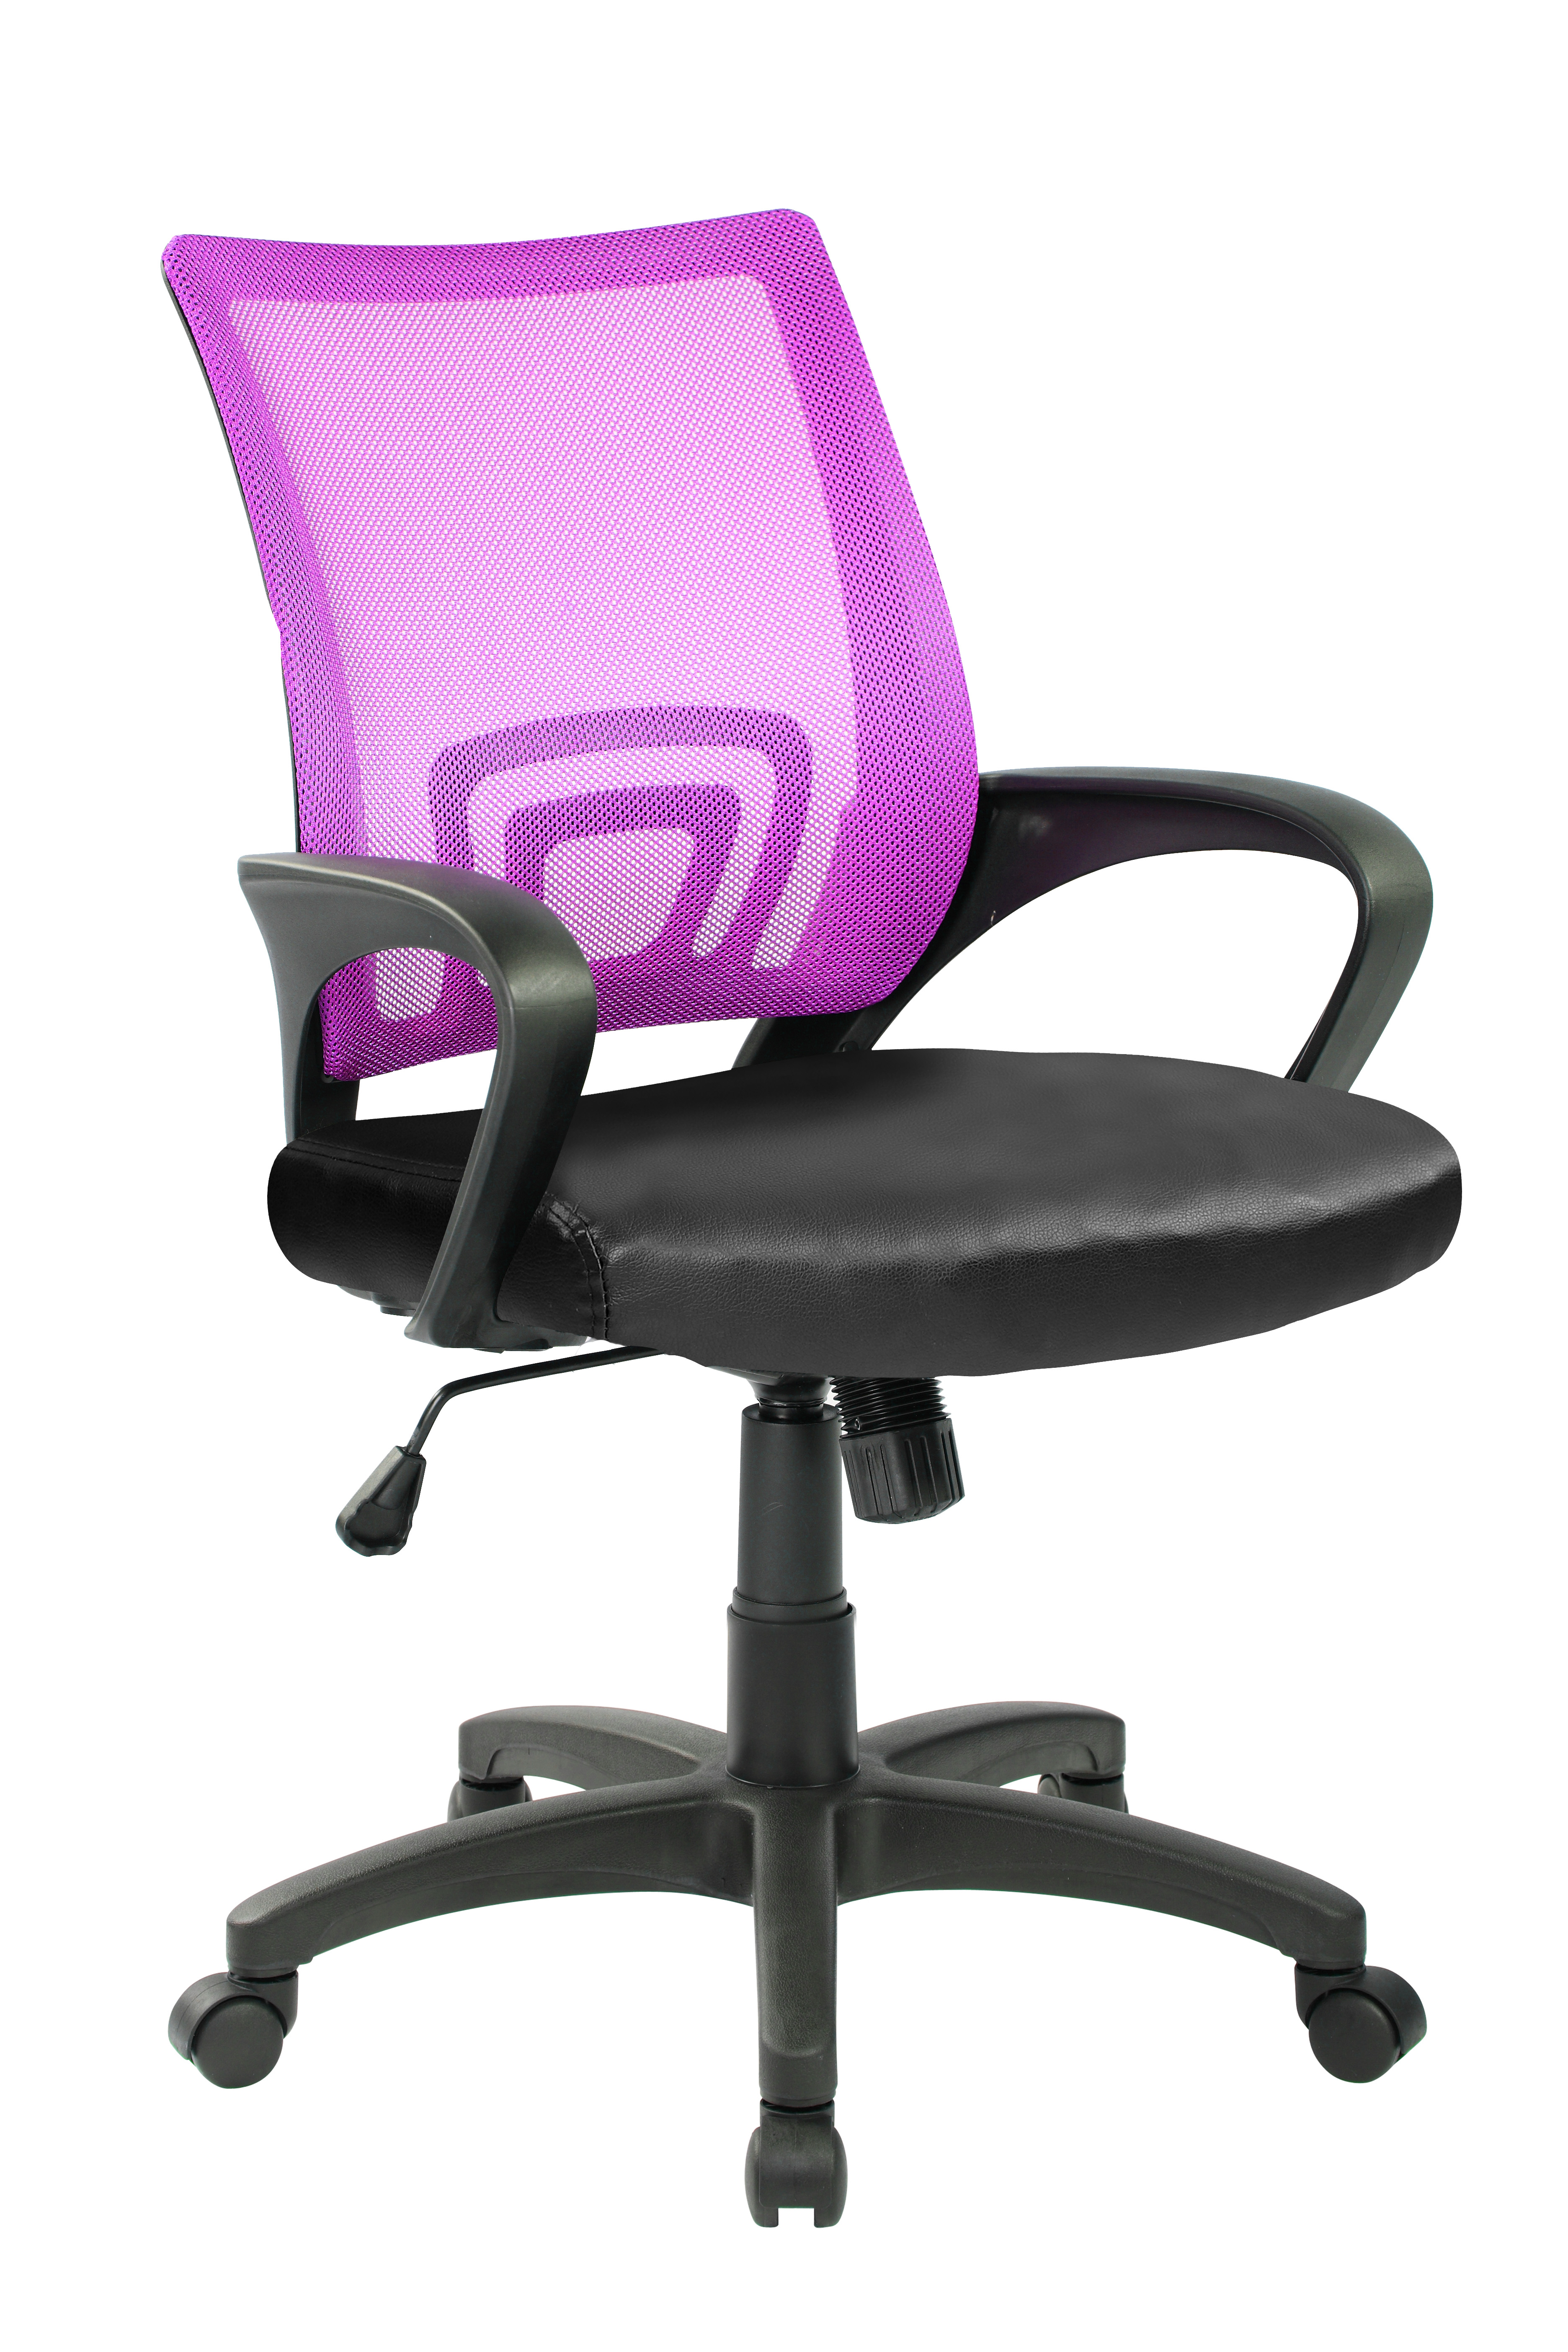 OFFICE CHAIR PURPLE -BLACK, ARMS